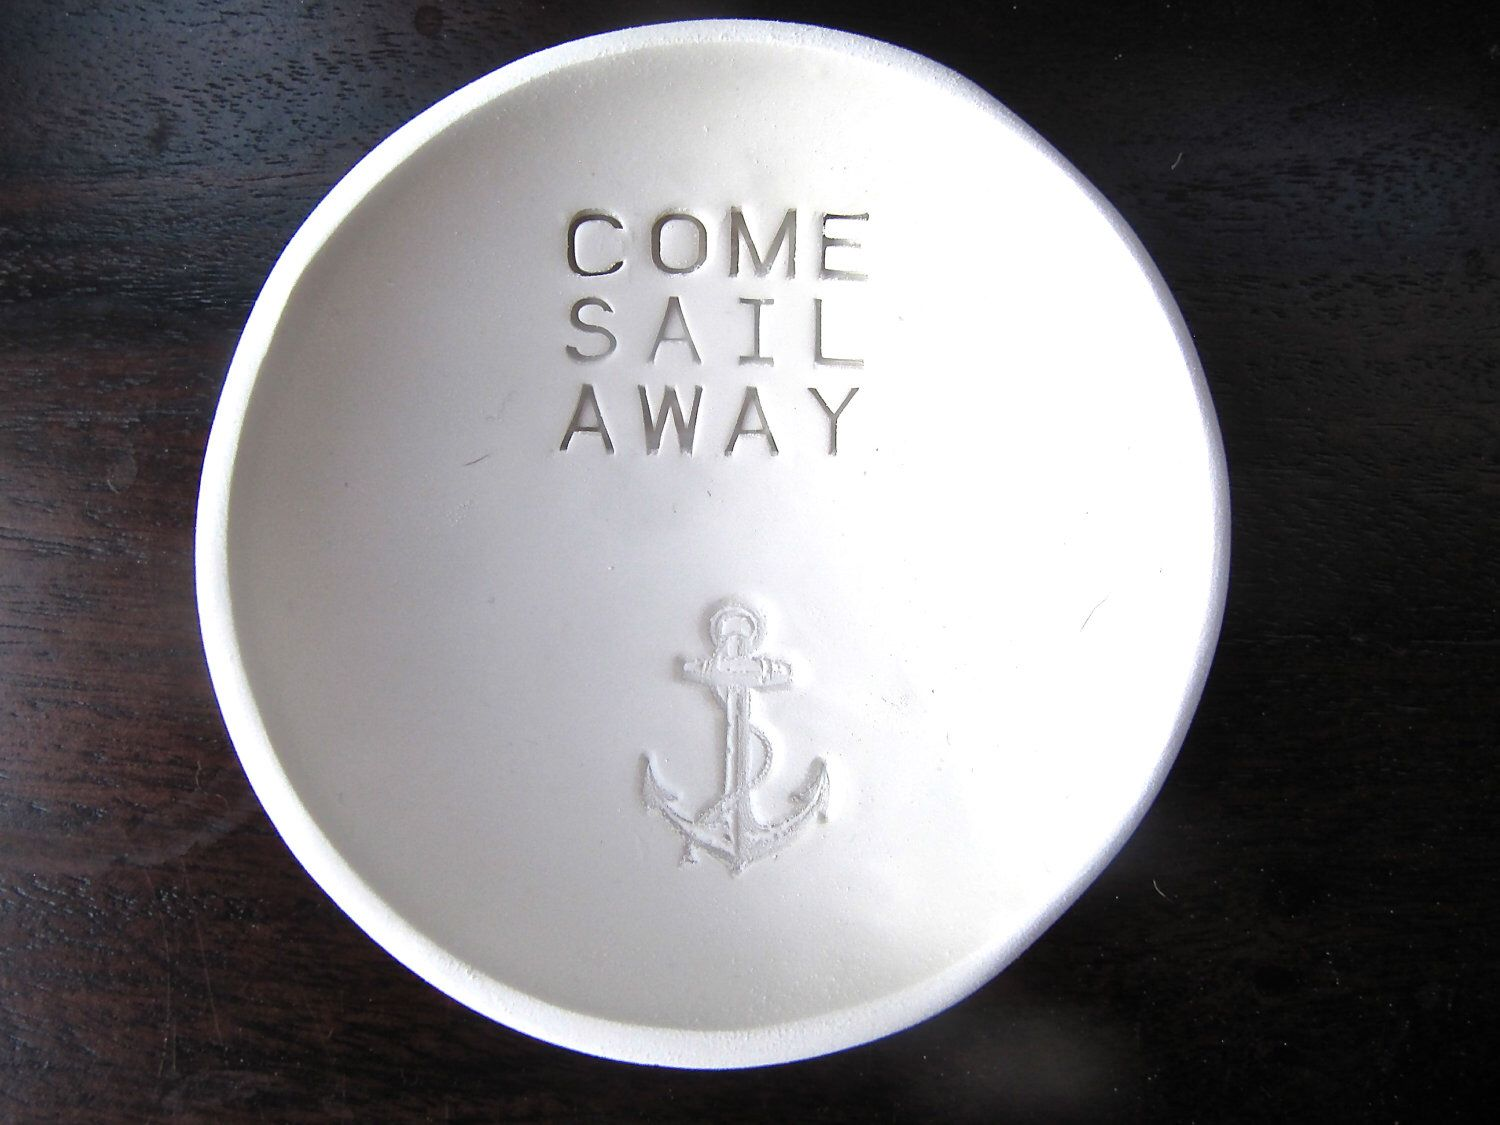 Jewelry Bowl Or Catchall With Anchor Imprint And Quote Made Of Polymer Clay   Necklace Holder